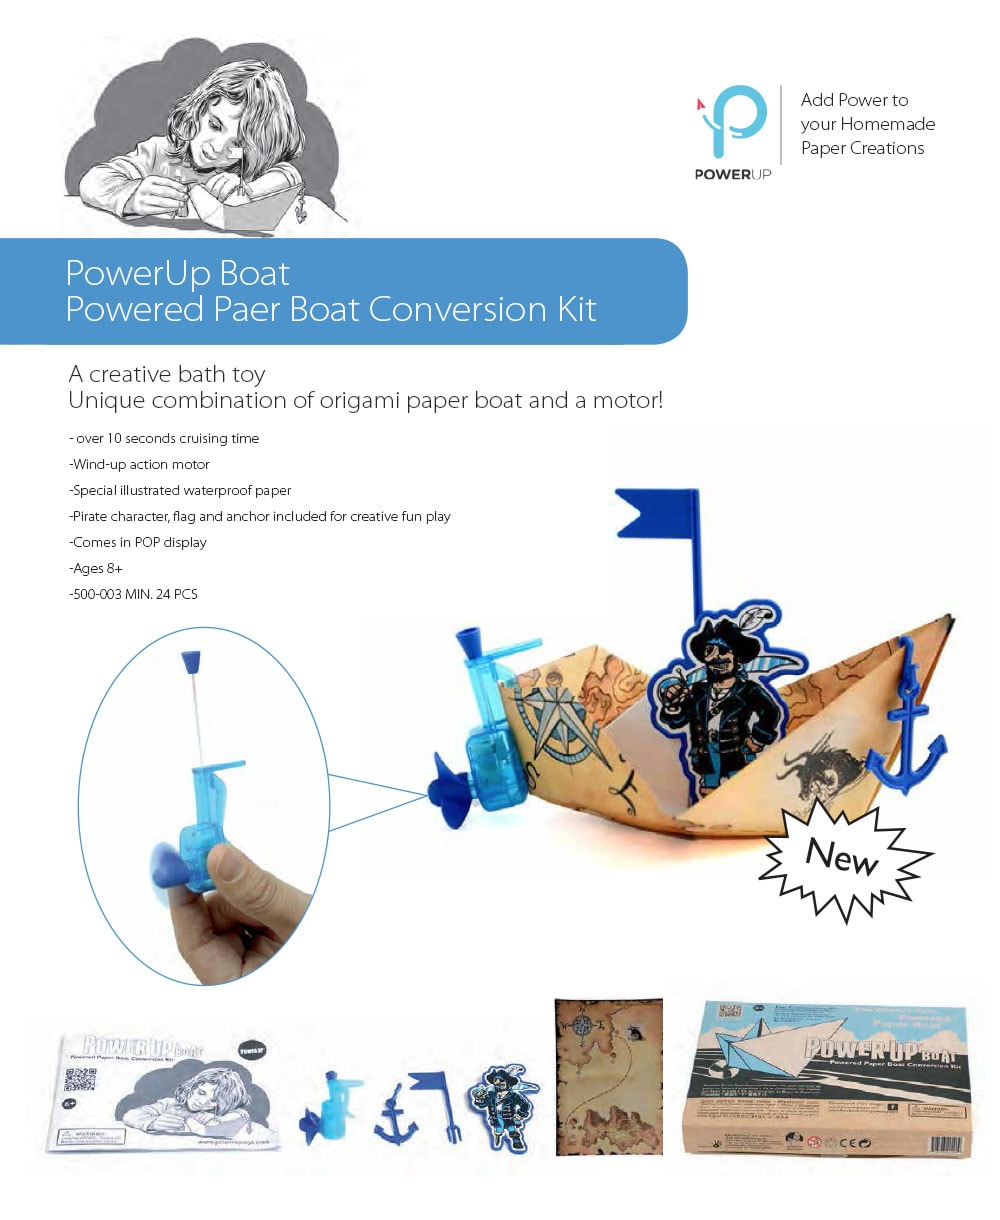 PowerUp Boat Powered Paper Boat Conversion Kit